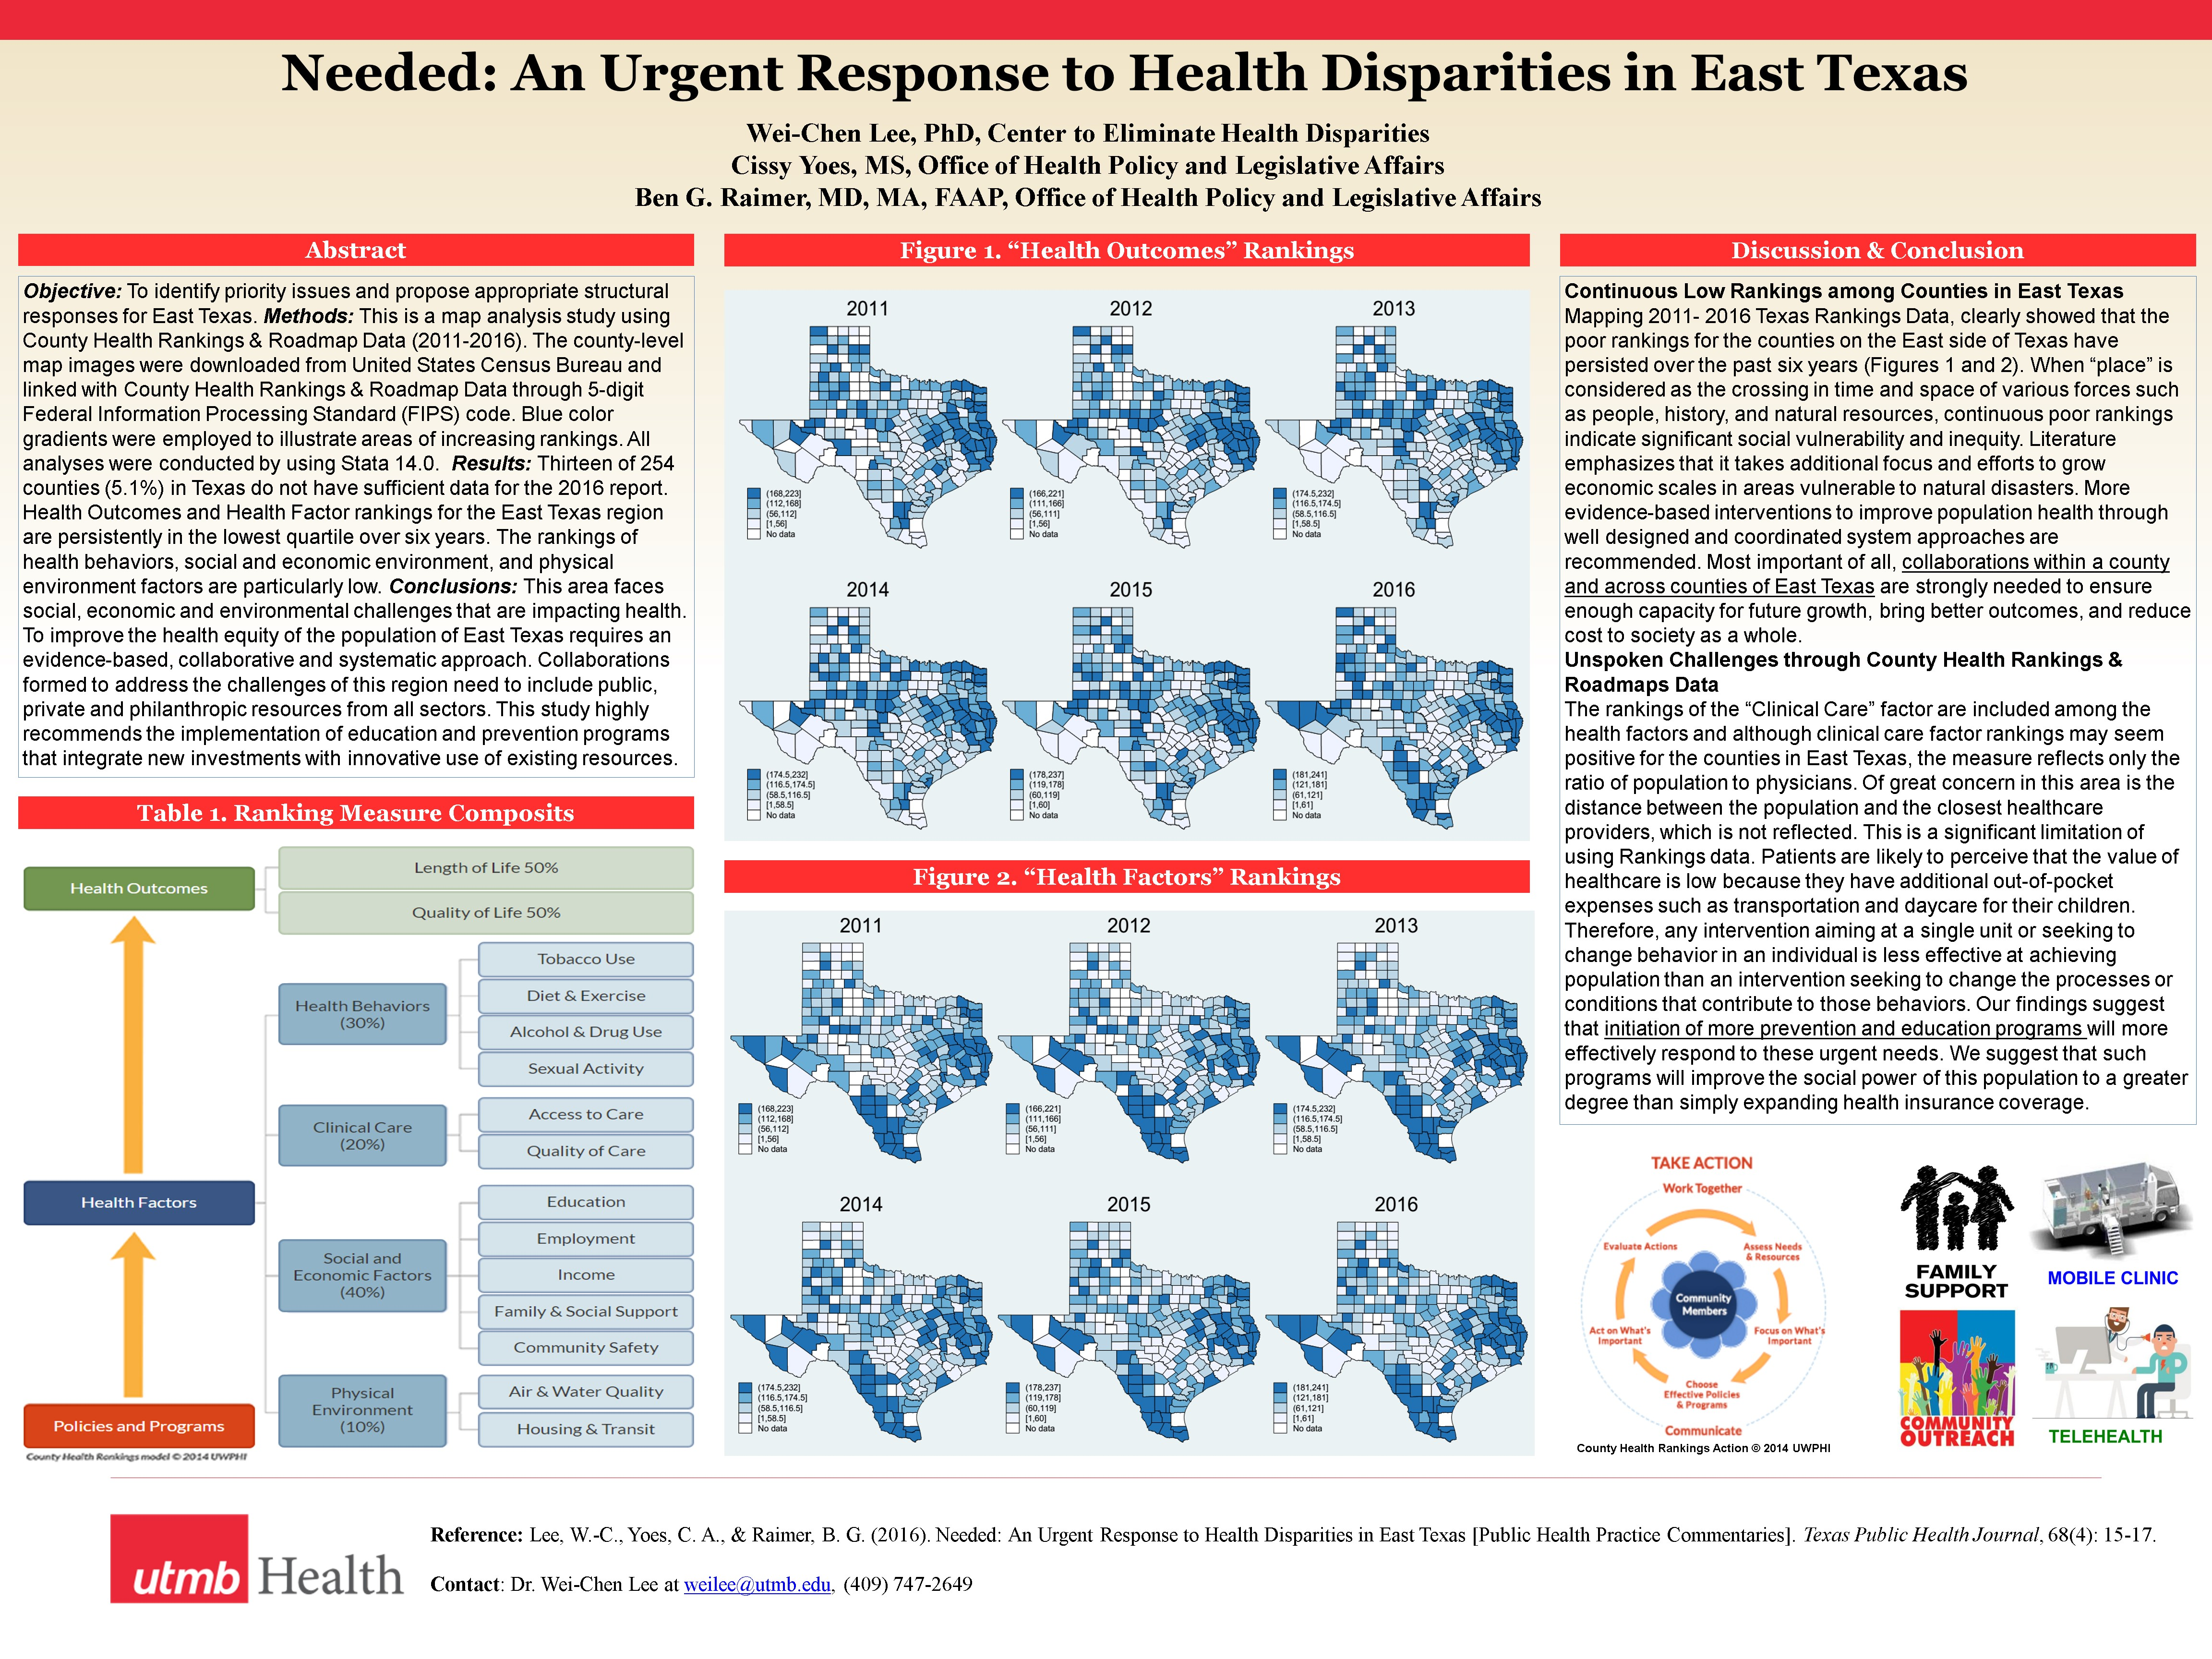 Miso, East Texas Health Disparities